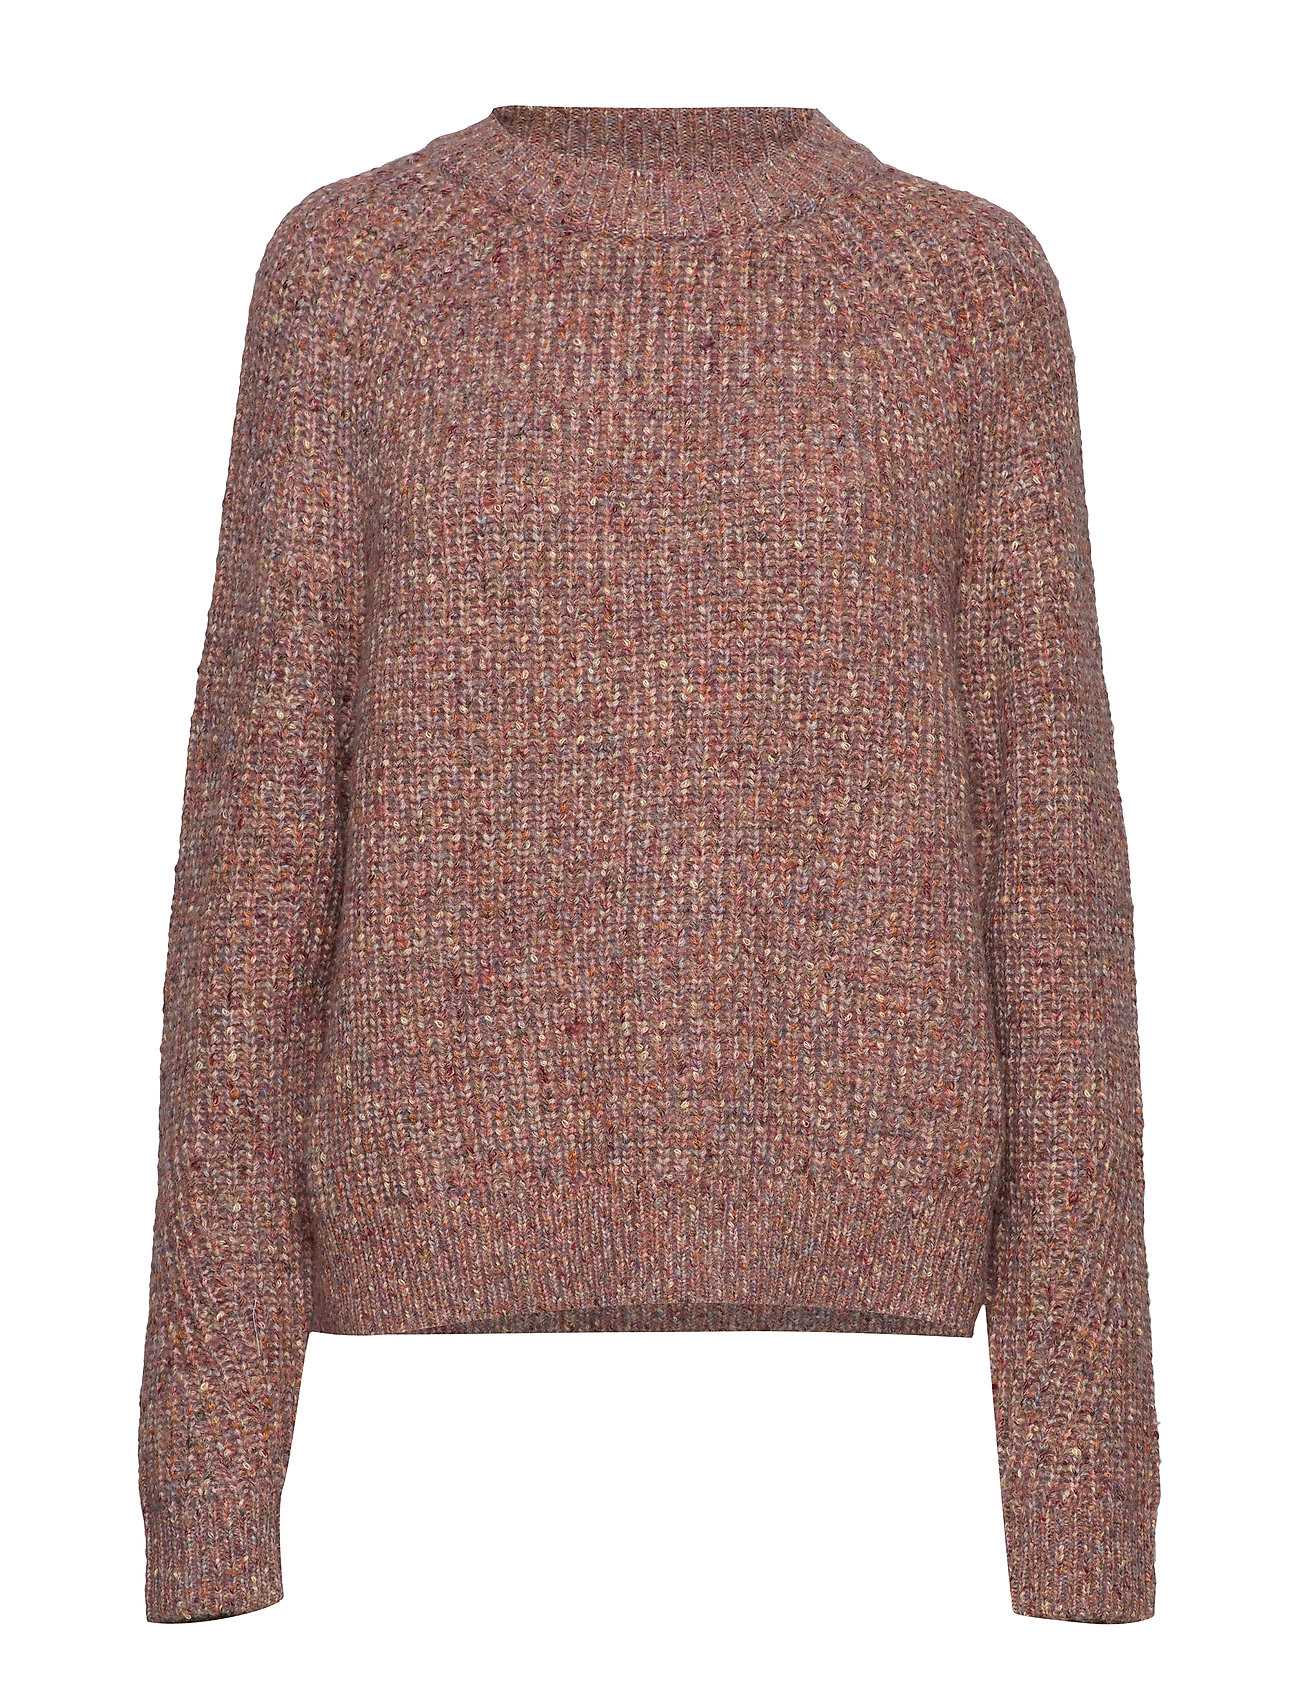 French Connection SUVIA KNITS CREW NECK JUMPER - CINDER PINK MULTI